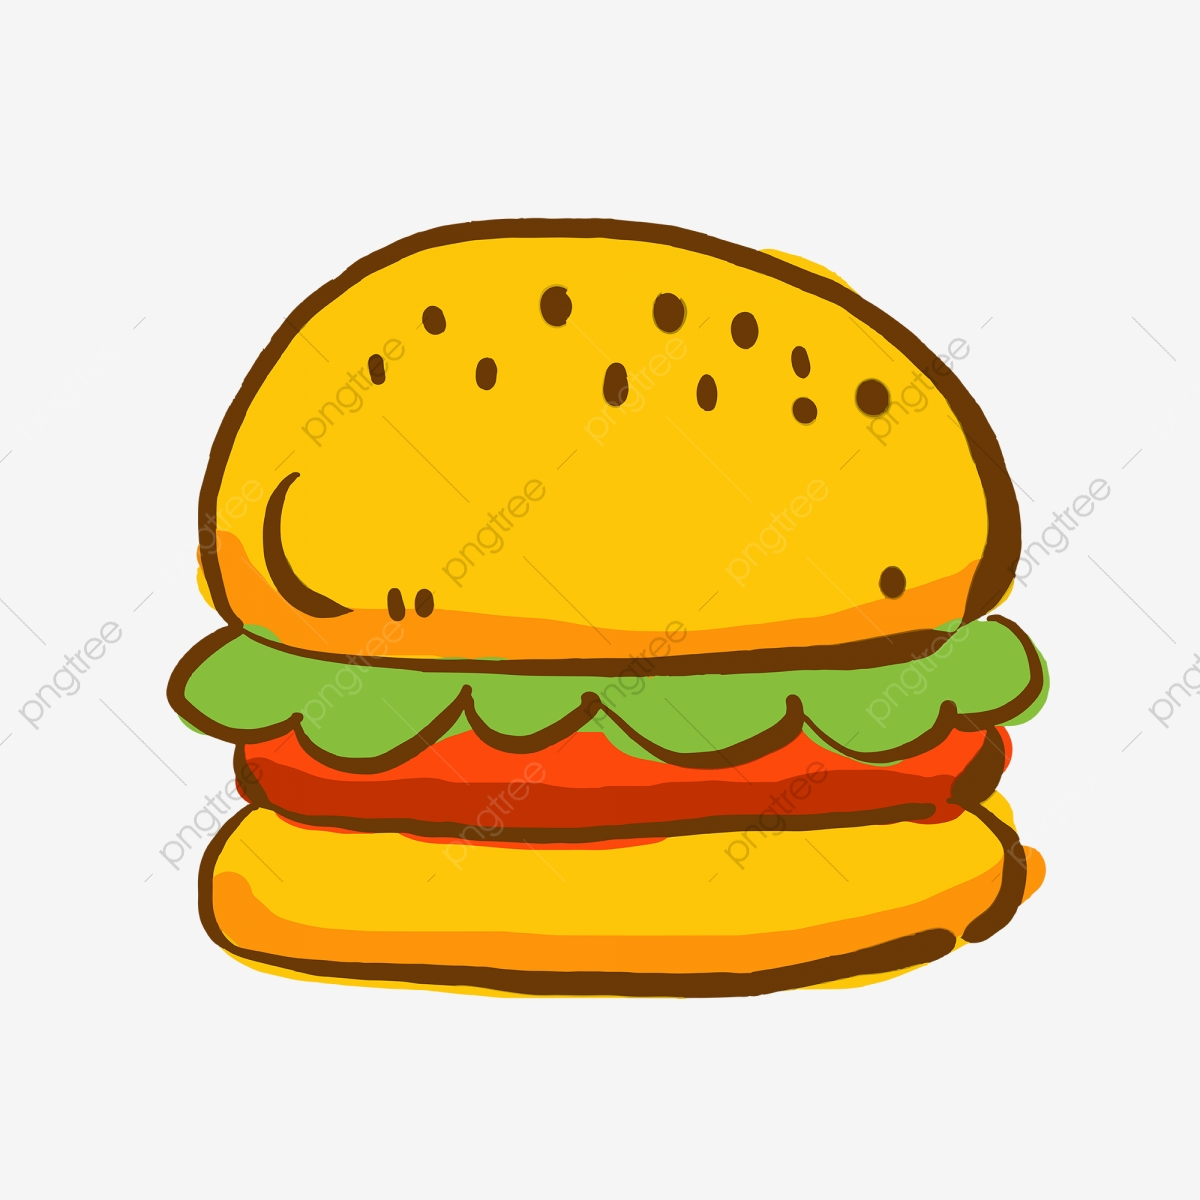 burger icon png hand painted western food burger icon material, hand painted